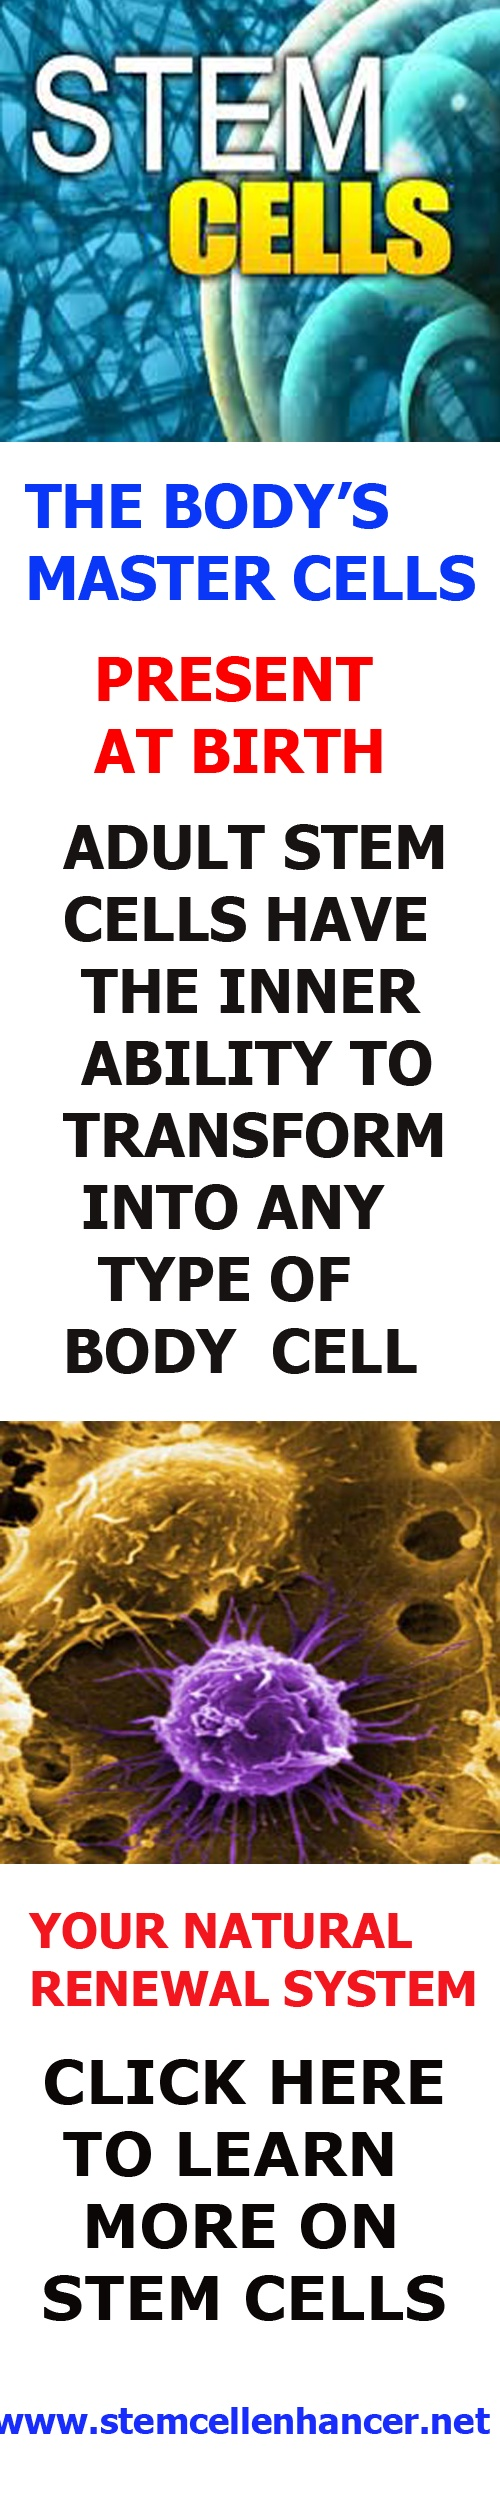 adult stem cells are present when you are born. Your body needs adult stem cells & stemenhance from Stemtech offers you a solution to increase stem cell nutrition in your body to keep you healthy & natural health therapy to optimize your health. http://www.stemcellenhancer.net Repin this thanxs jenn